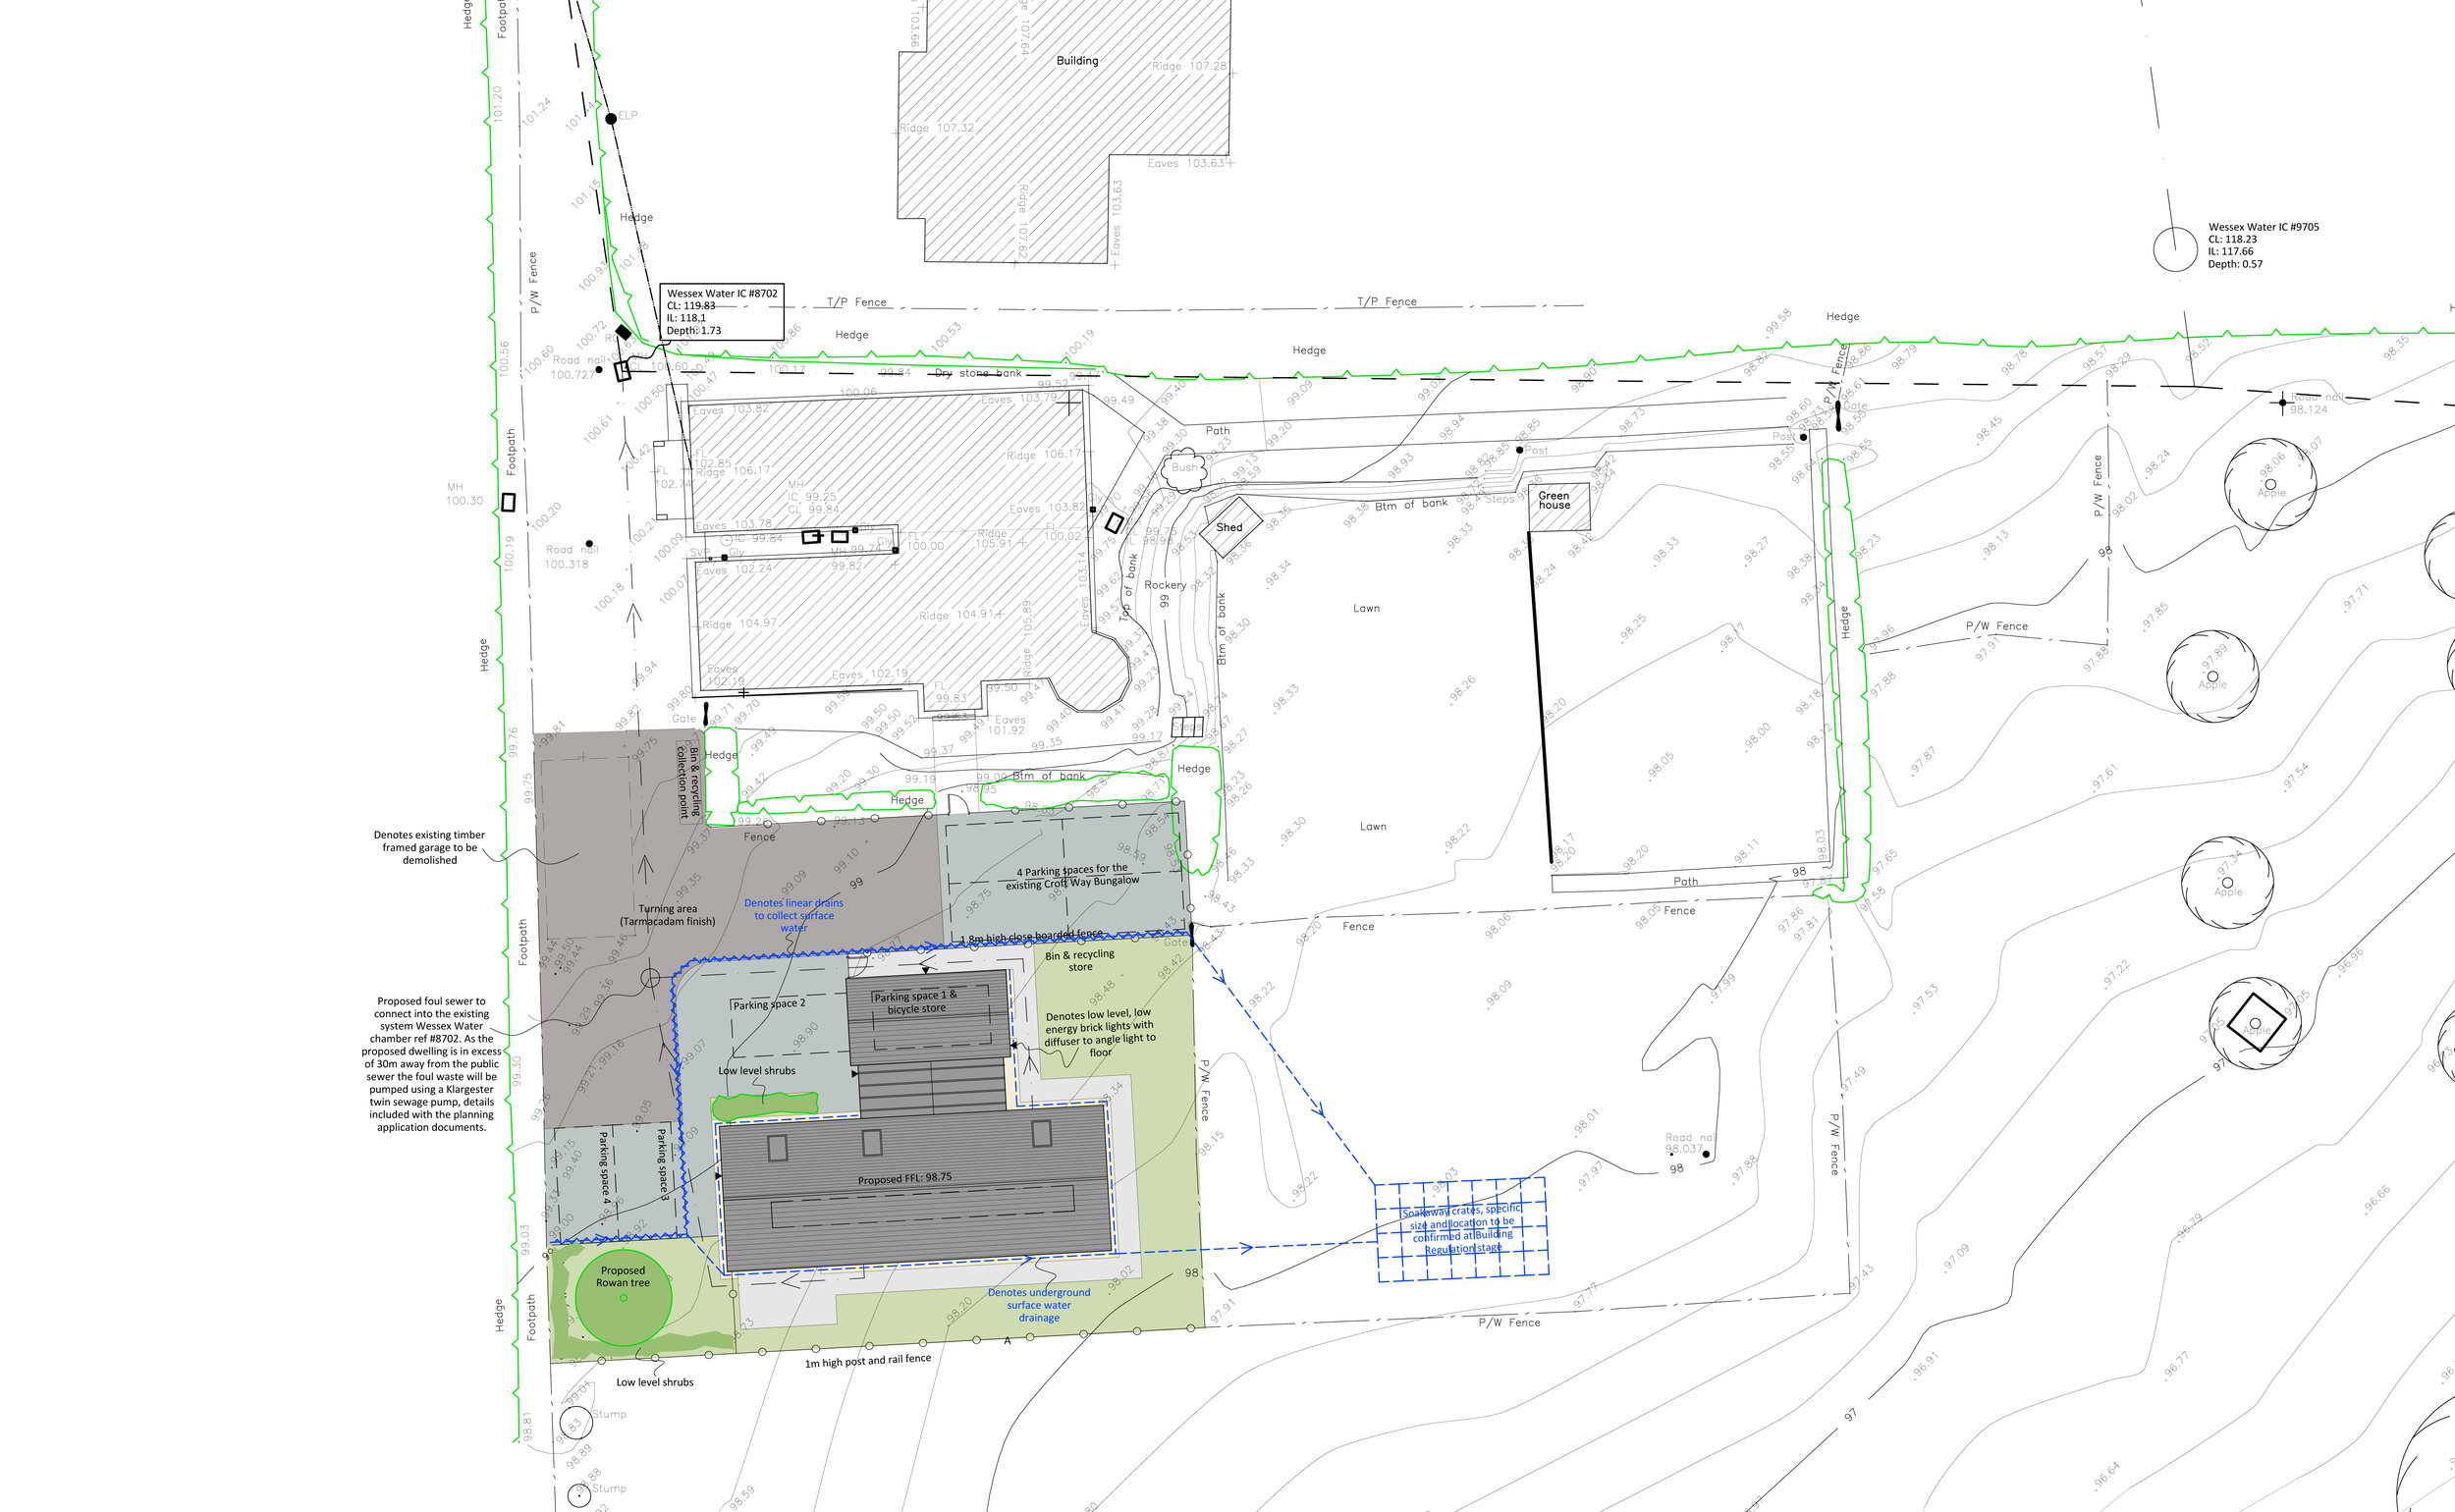 planning-approval-somerset-new-dwelling-plans-application-nick-thorne